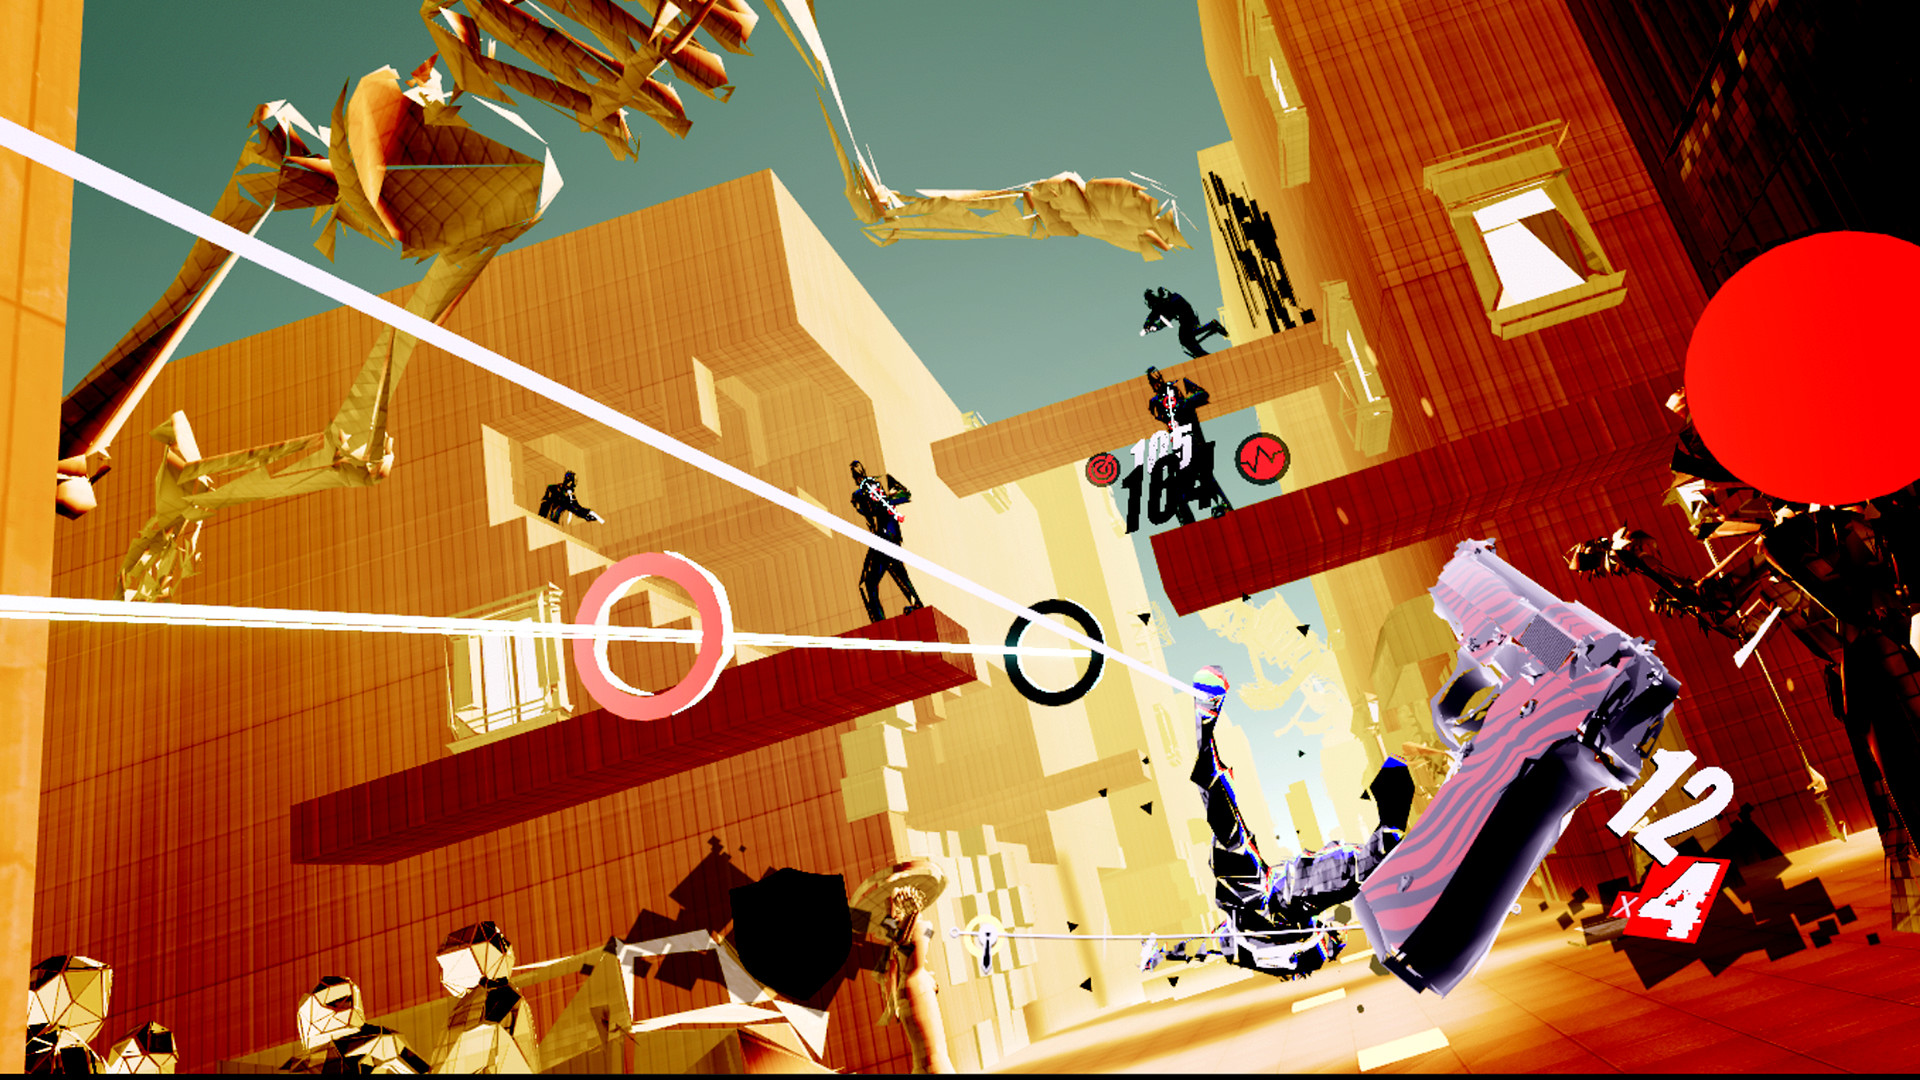 A screenshot of a surreal environment with silhouetted men in suits shooting at you in Pistol Whip.